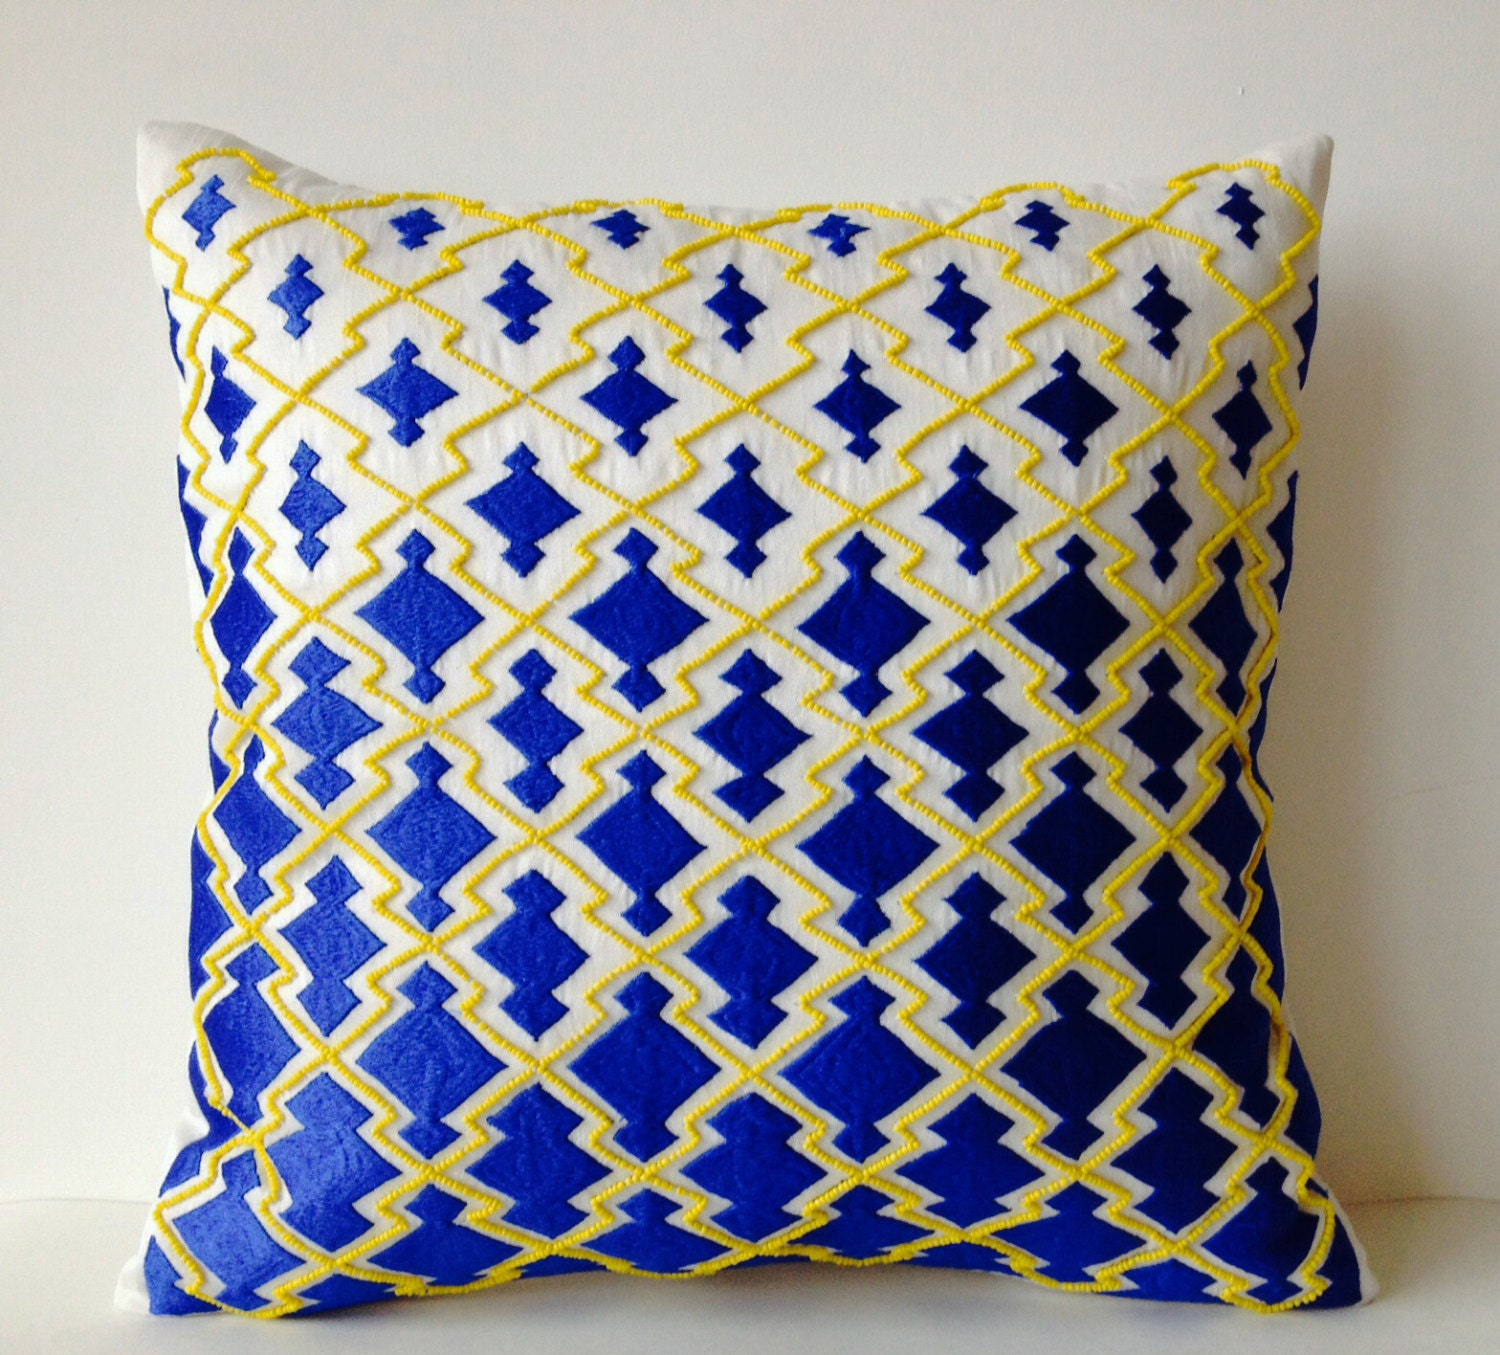 Royal Blue And White Throw Pillows : Throw Pillows Royal Blue Decorative Pillowcase in by AmoreBeaute